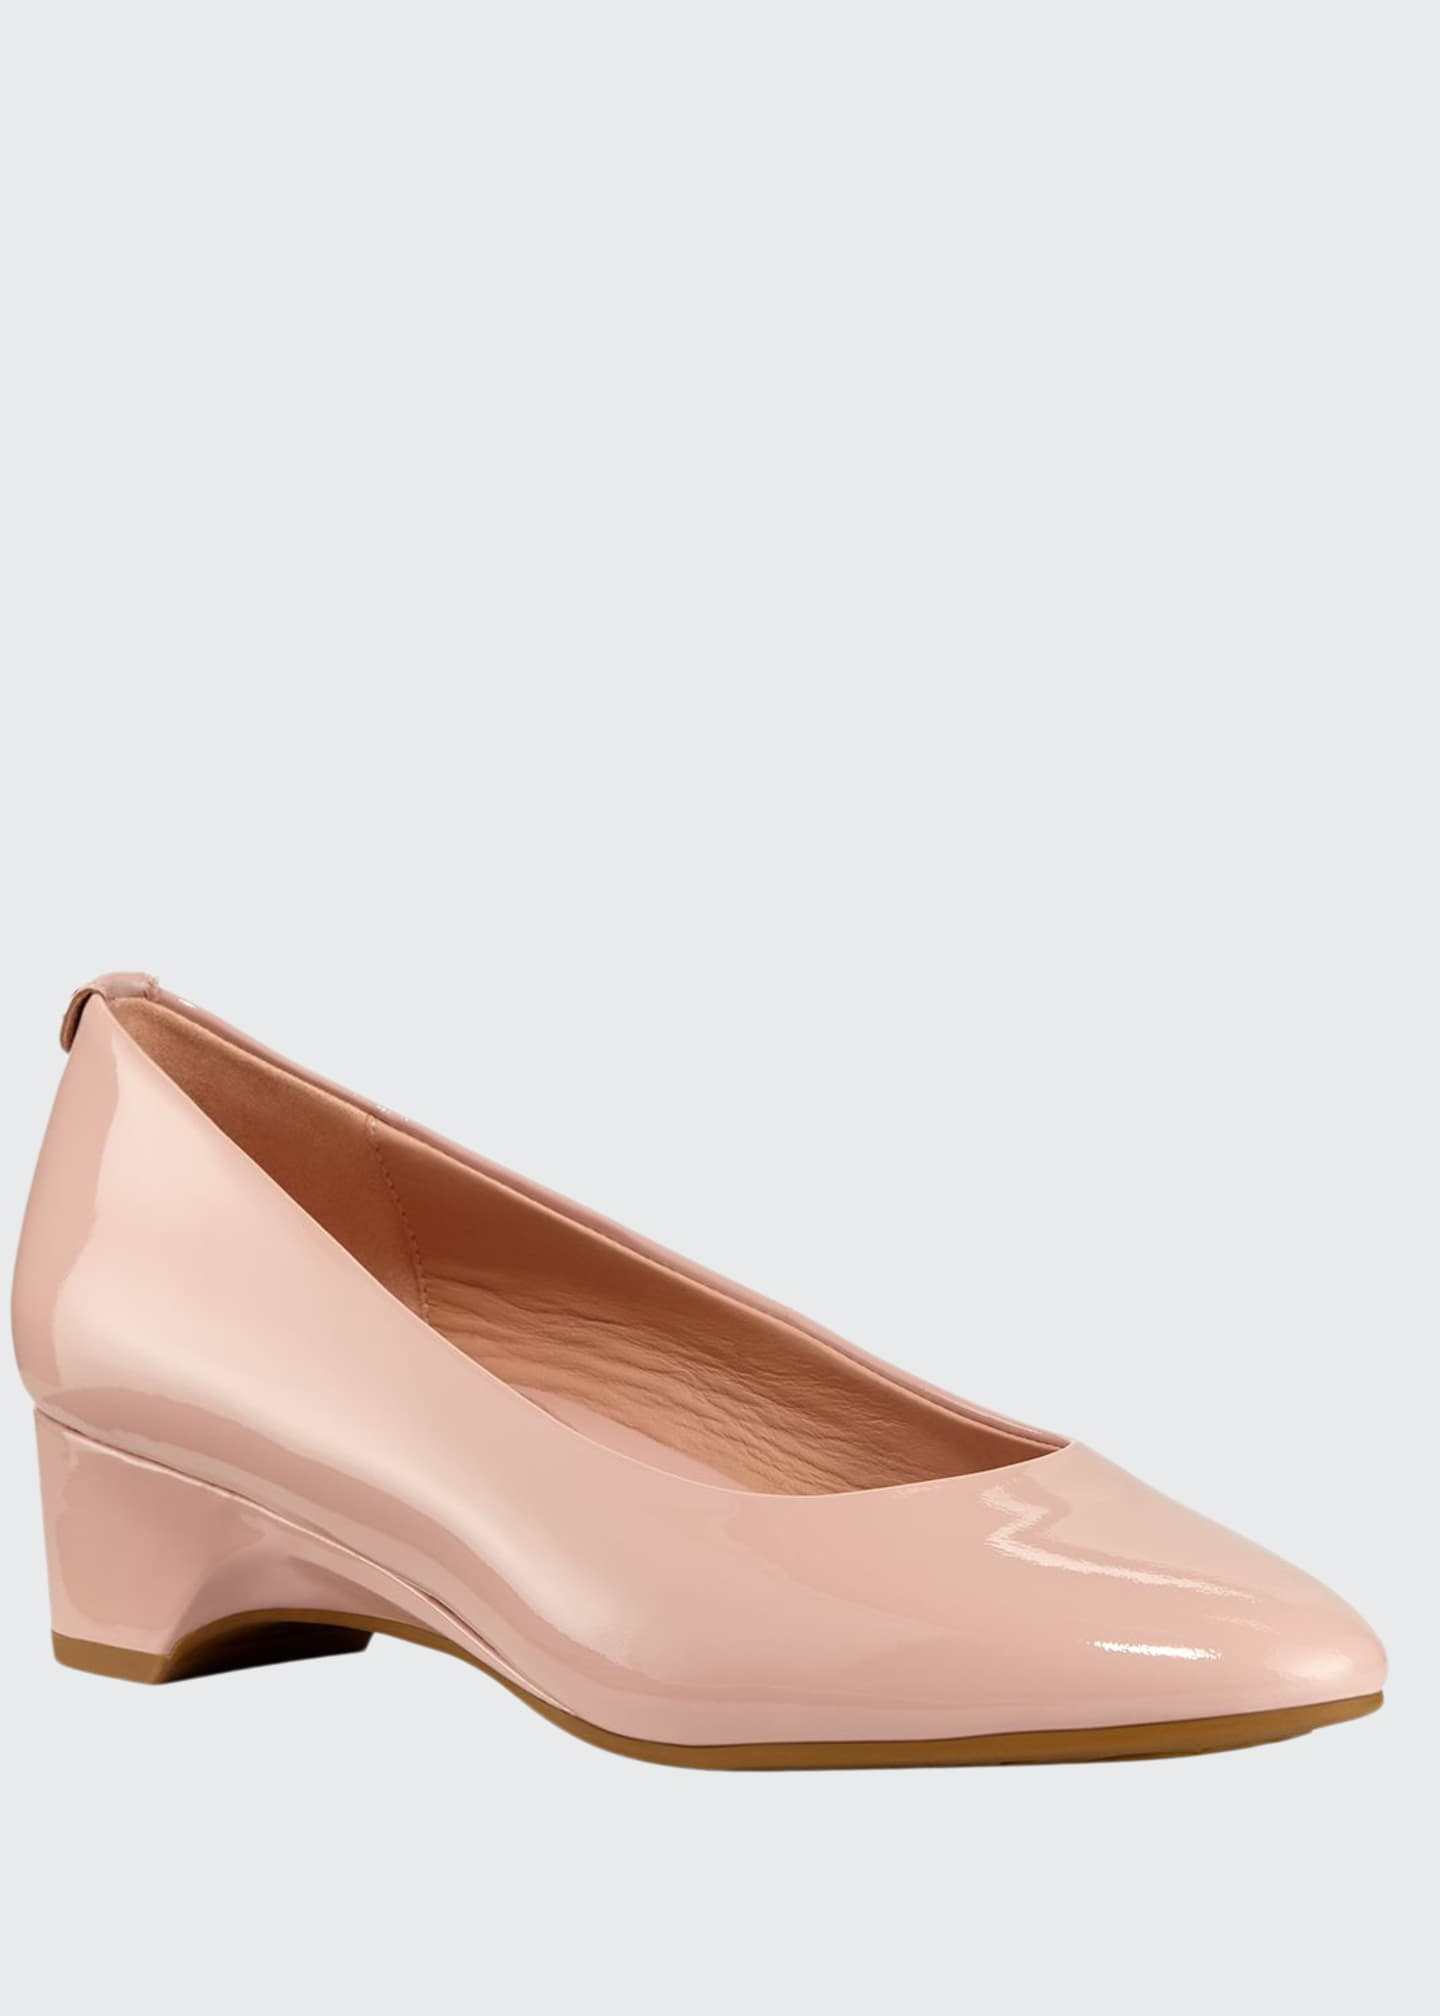 Taryn Rose Babs Soft Patent Leather Demi-Wedge Comfort